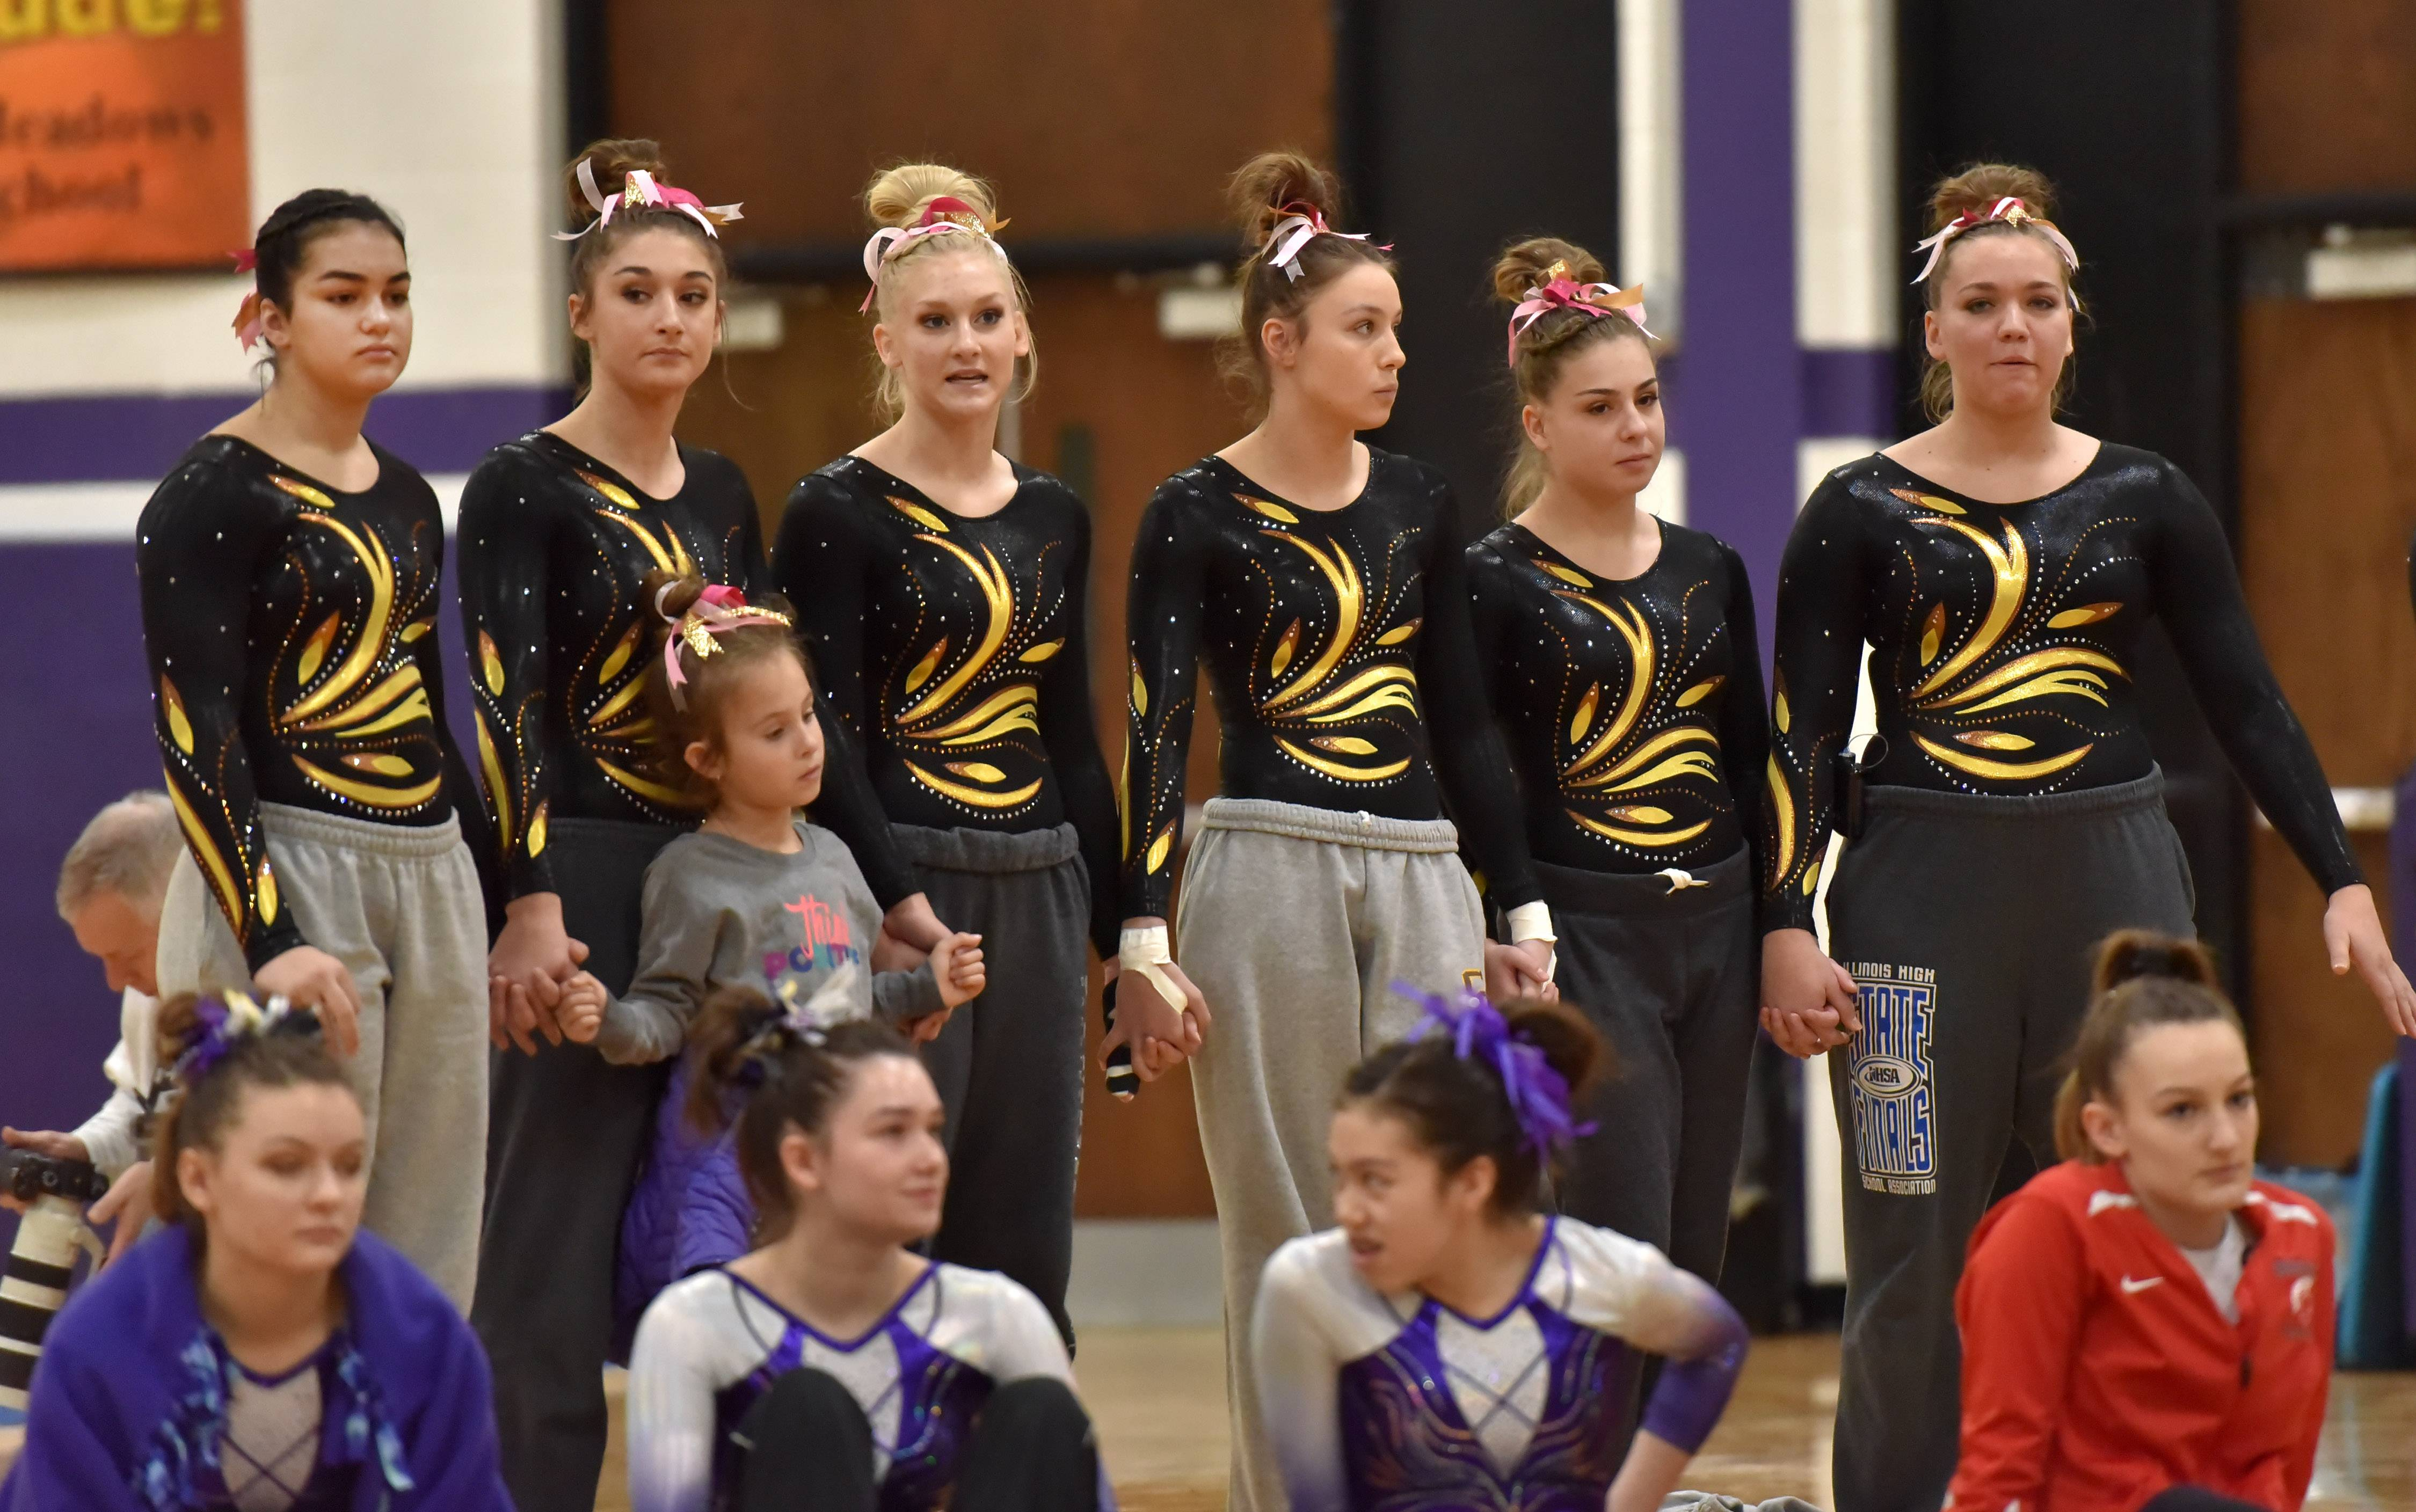 Part of the Carmel Catholic High School team hold hands as they watch a teammate Saturday at the Rolling Meadows High School girls gymnastics Al Galatte Holiday Invitational.